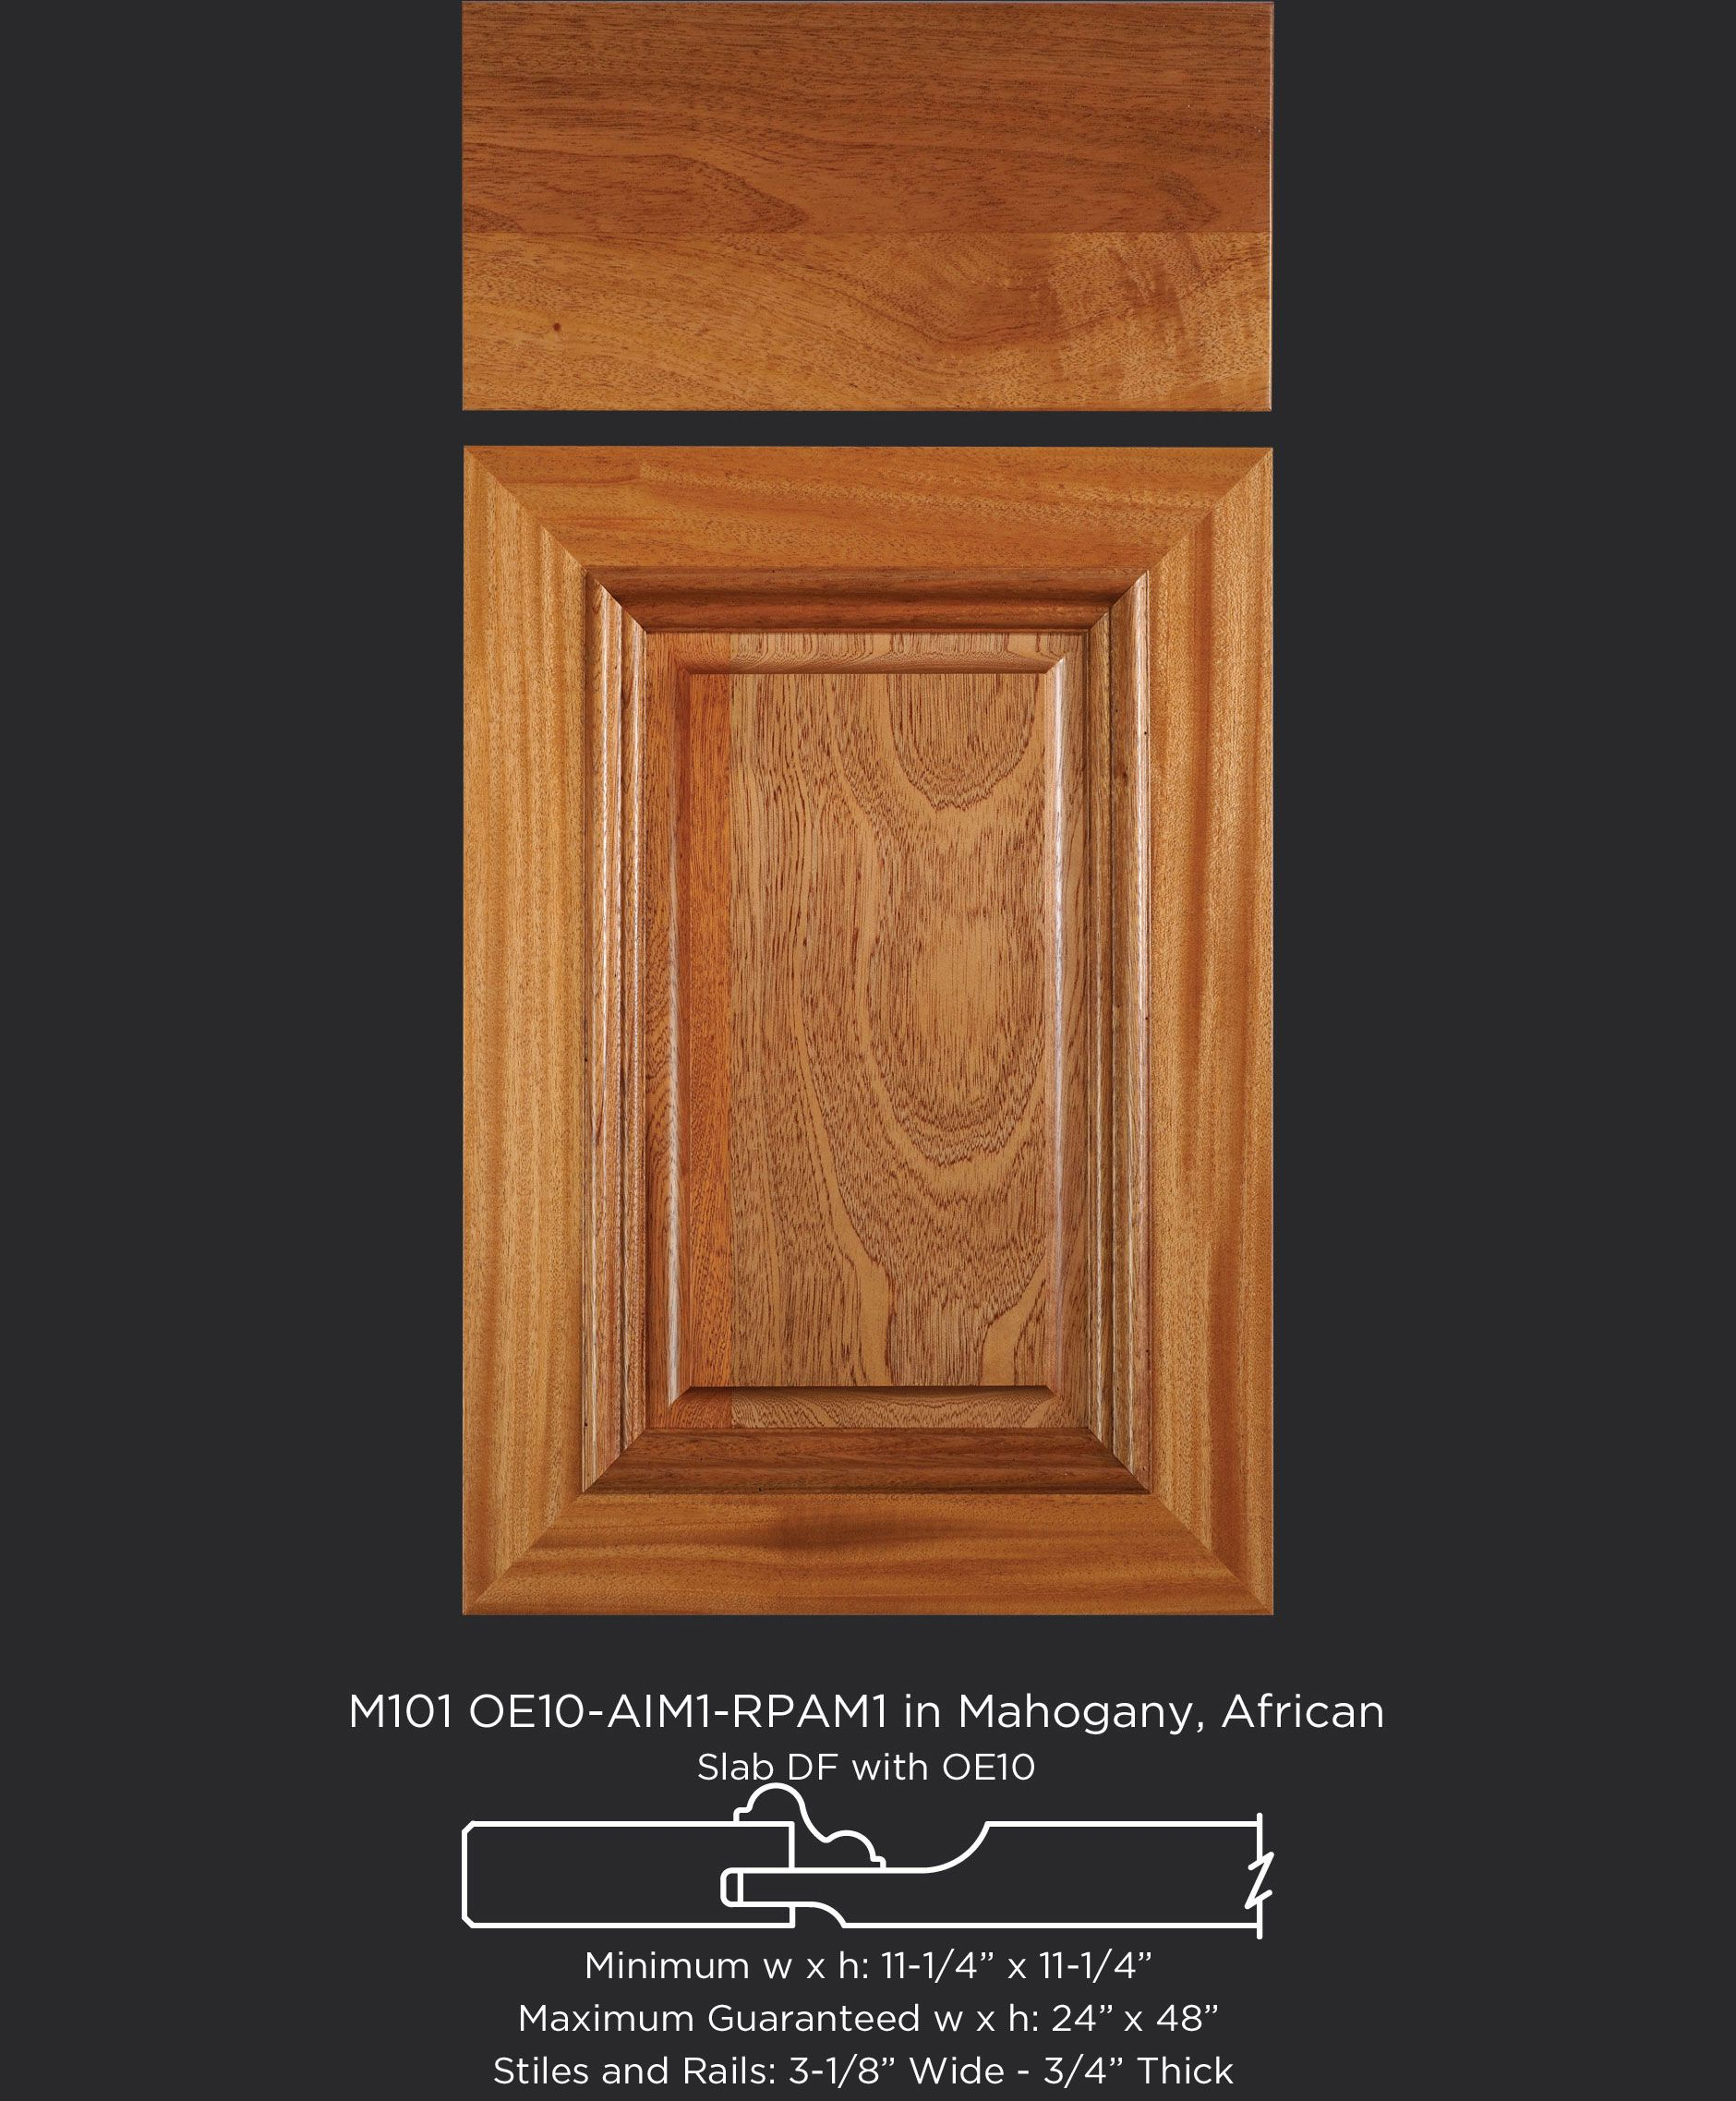 Email For Price Sheet On This One Too Mitered Cabinet Door M101 Oe10 Rpam1 Aim1 In Mahogany African Slab Drawer Front With O Mahogany African Cabinet Doors